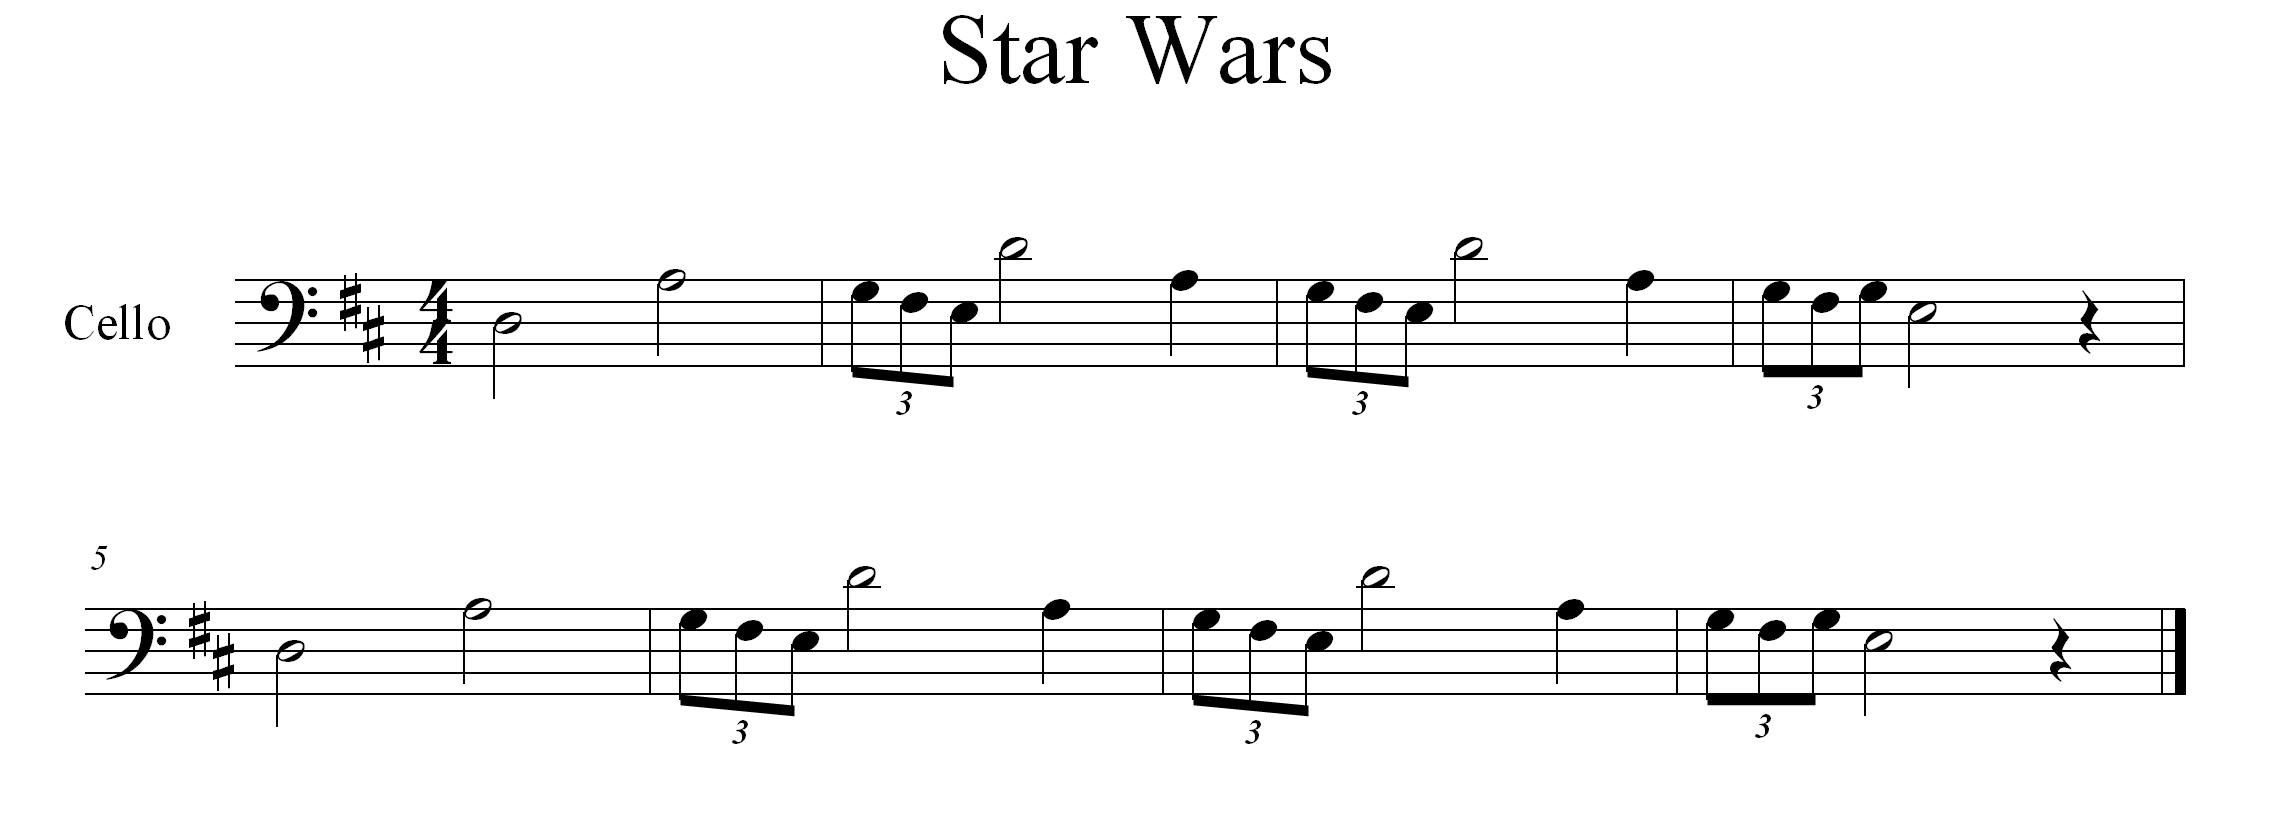 star wars theme song piano pdf